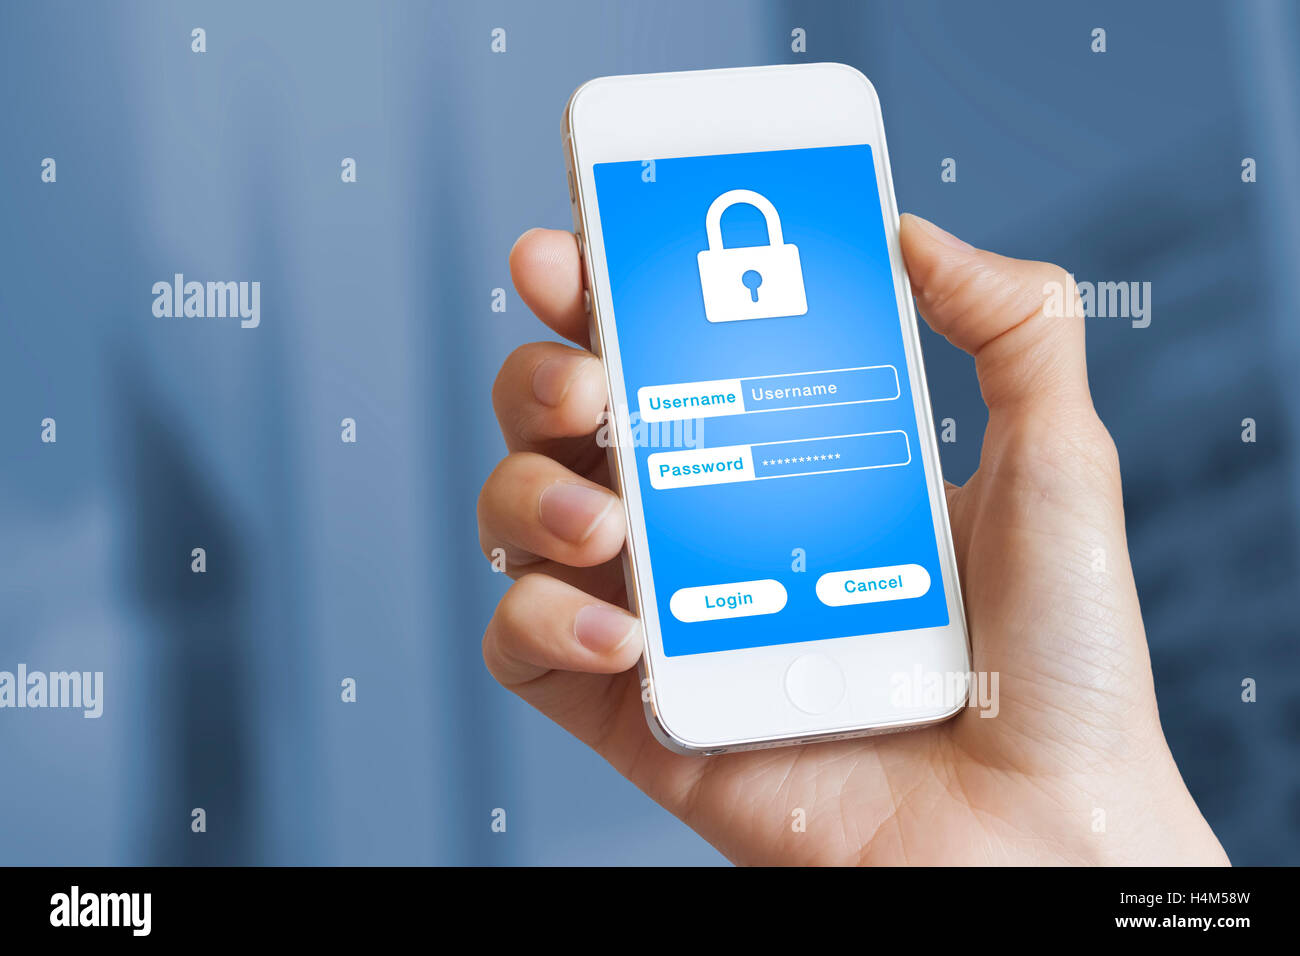 Secure login on mobile phone with username and password for securely accessing online bank and payment - Stock Image